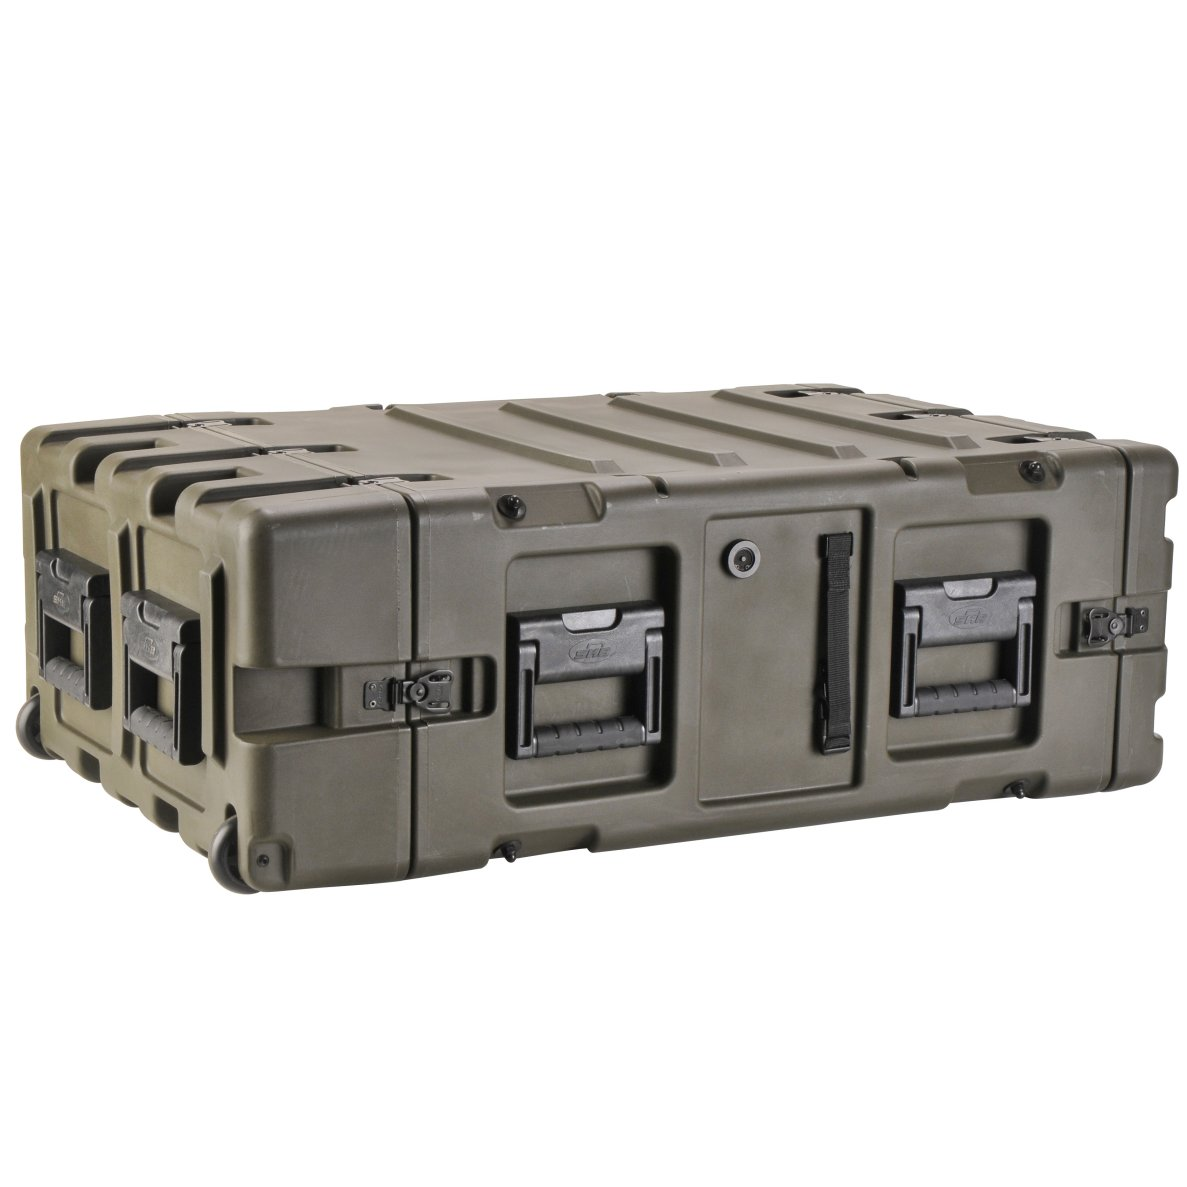 "SKB Cases 3RR-4U24-25B 3RR Series 4U Removable Shock Rack & Transport Case 24"" Deep (3RR4U2425B)"